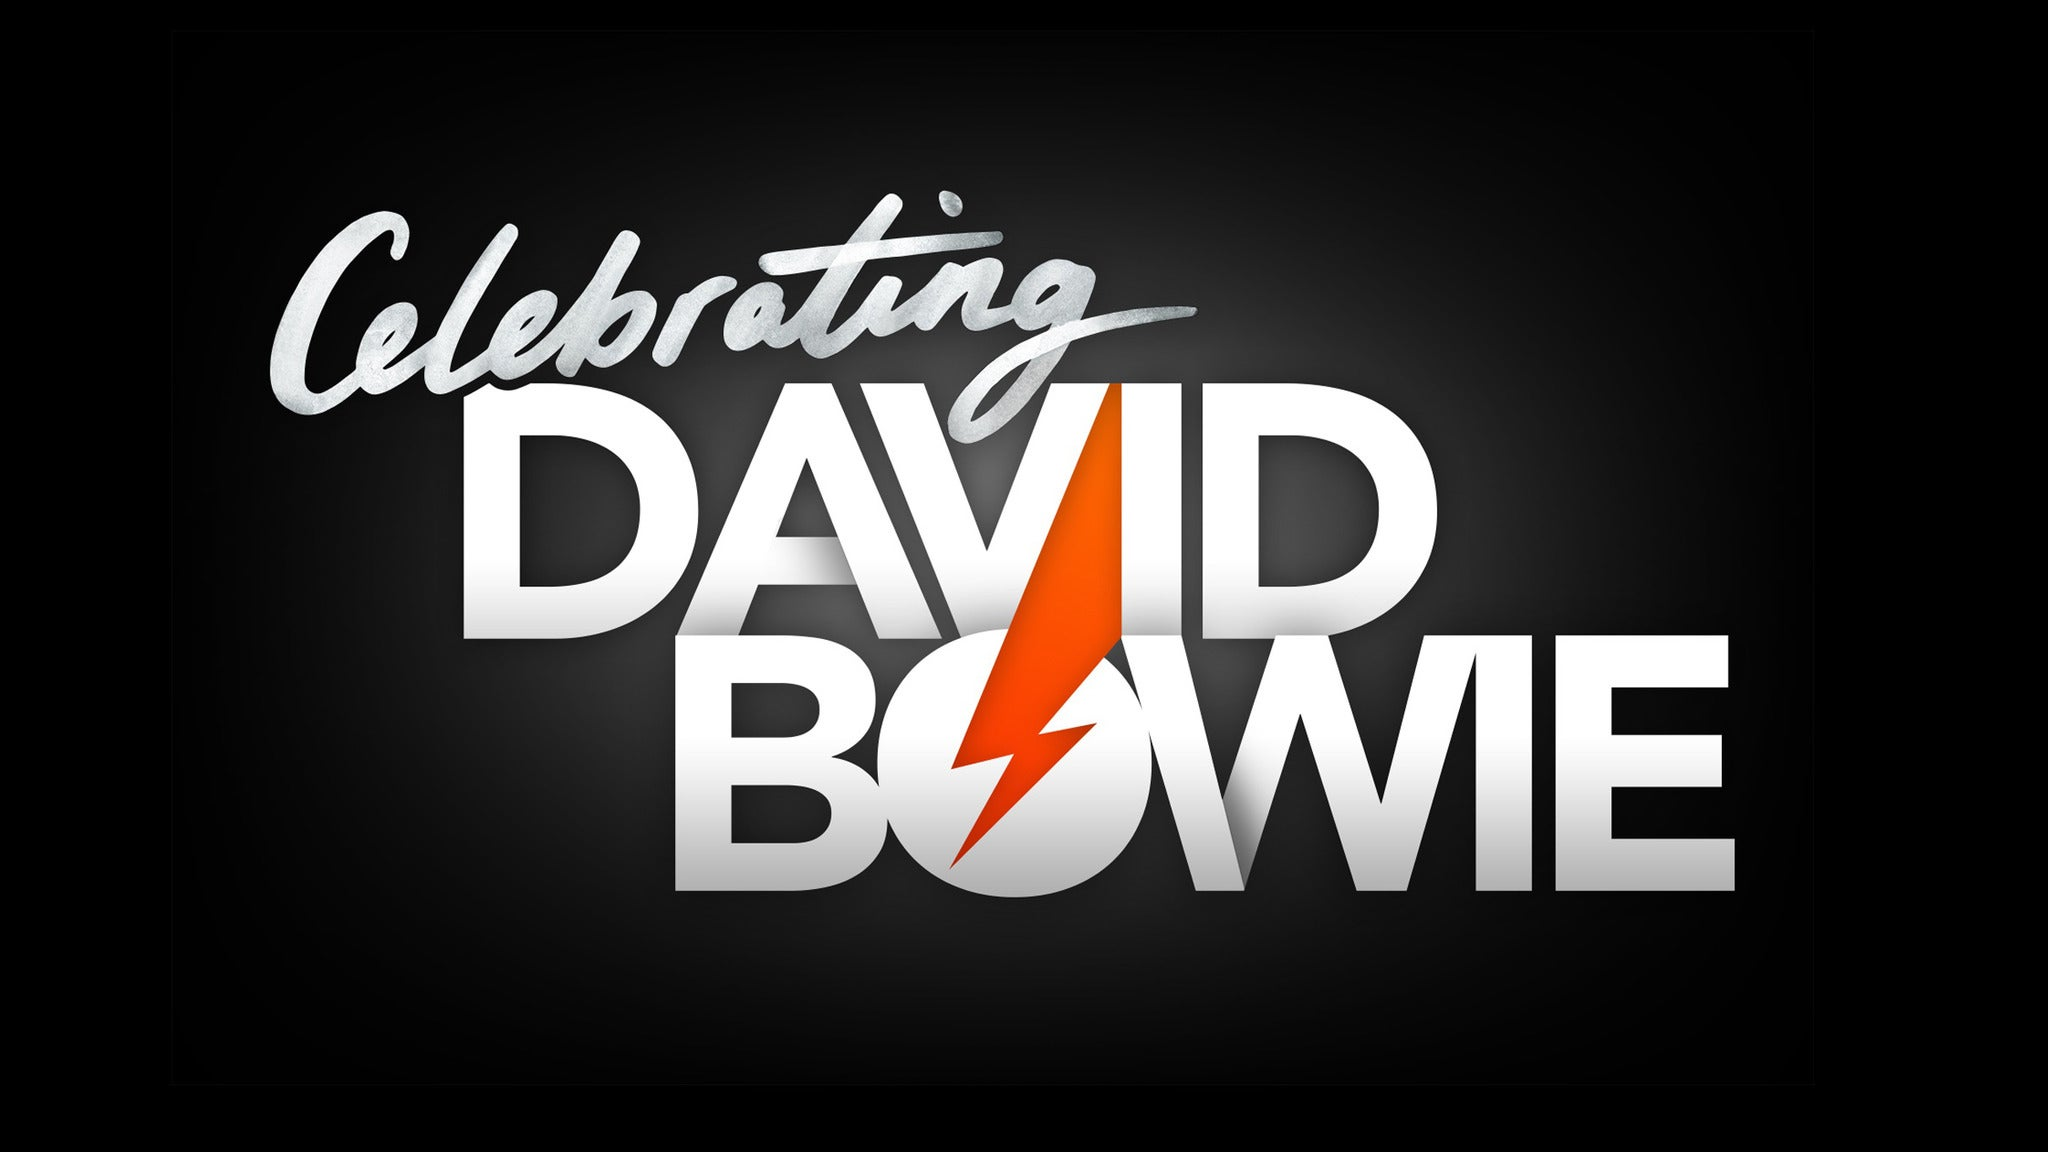 Ticketmaster phone number houston - Celebrating David Bowie